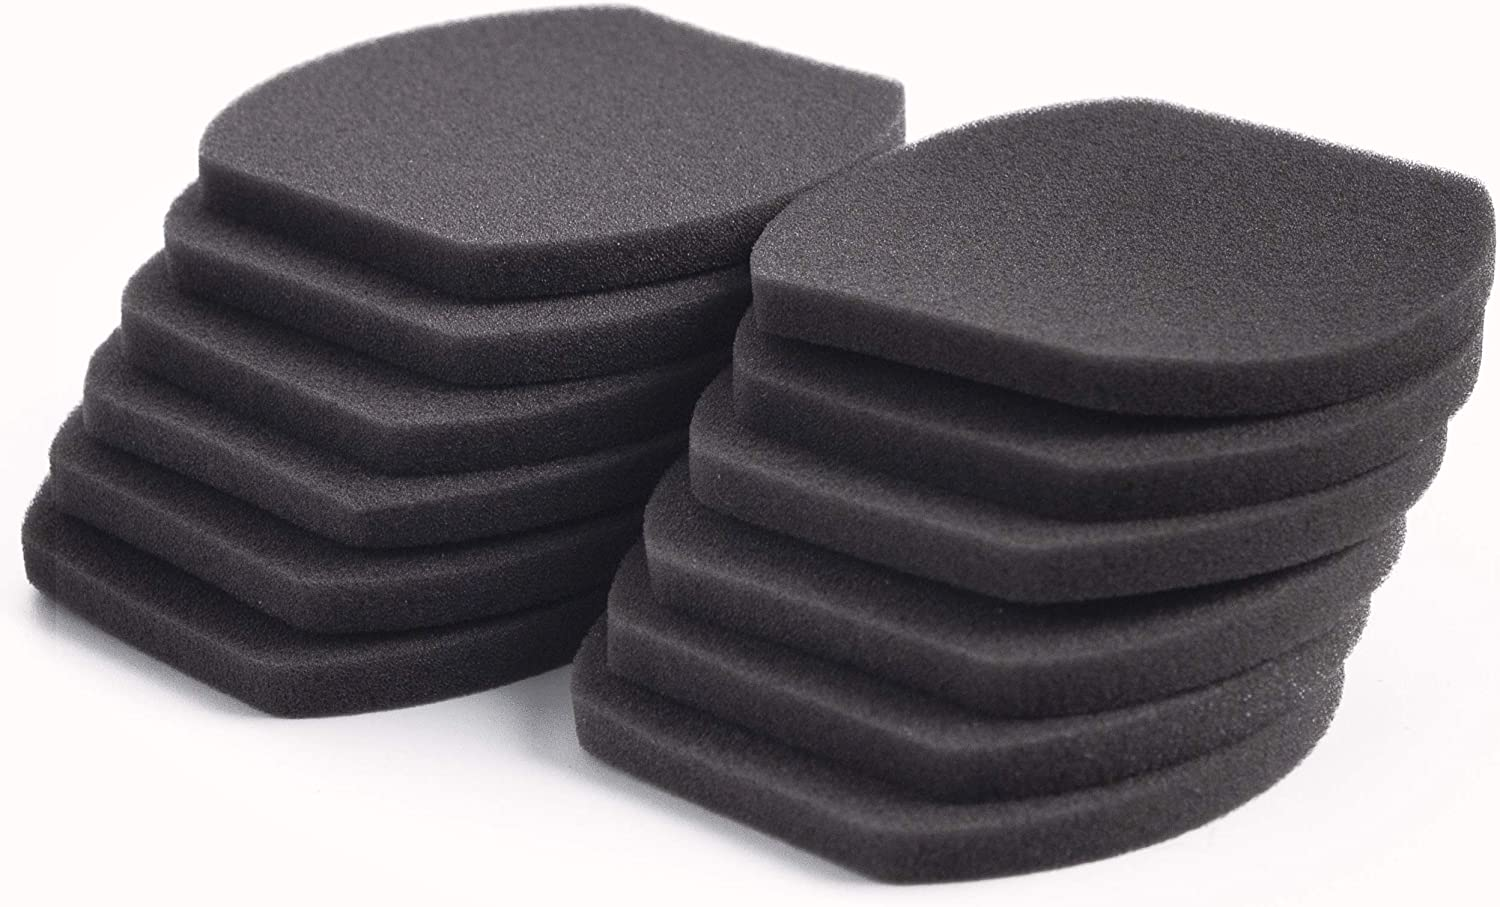 LTWHOME Replacement Vacuum Foam Filter Fit for Bissell 3-in-1 Stick Vacuum Cleaner, Compare to Part 2037424 (Pack of 12)